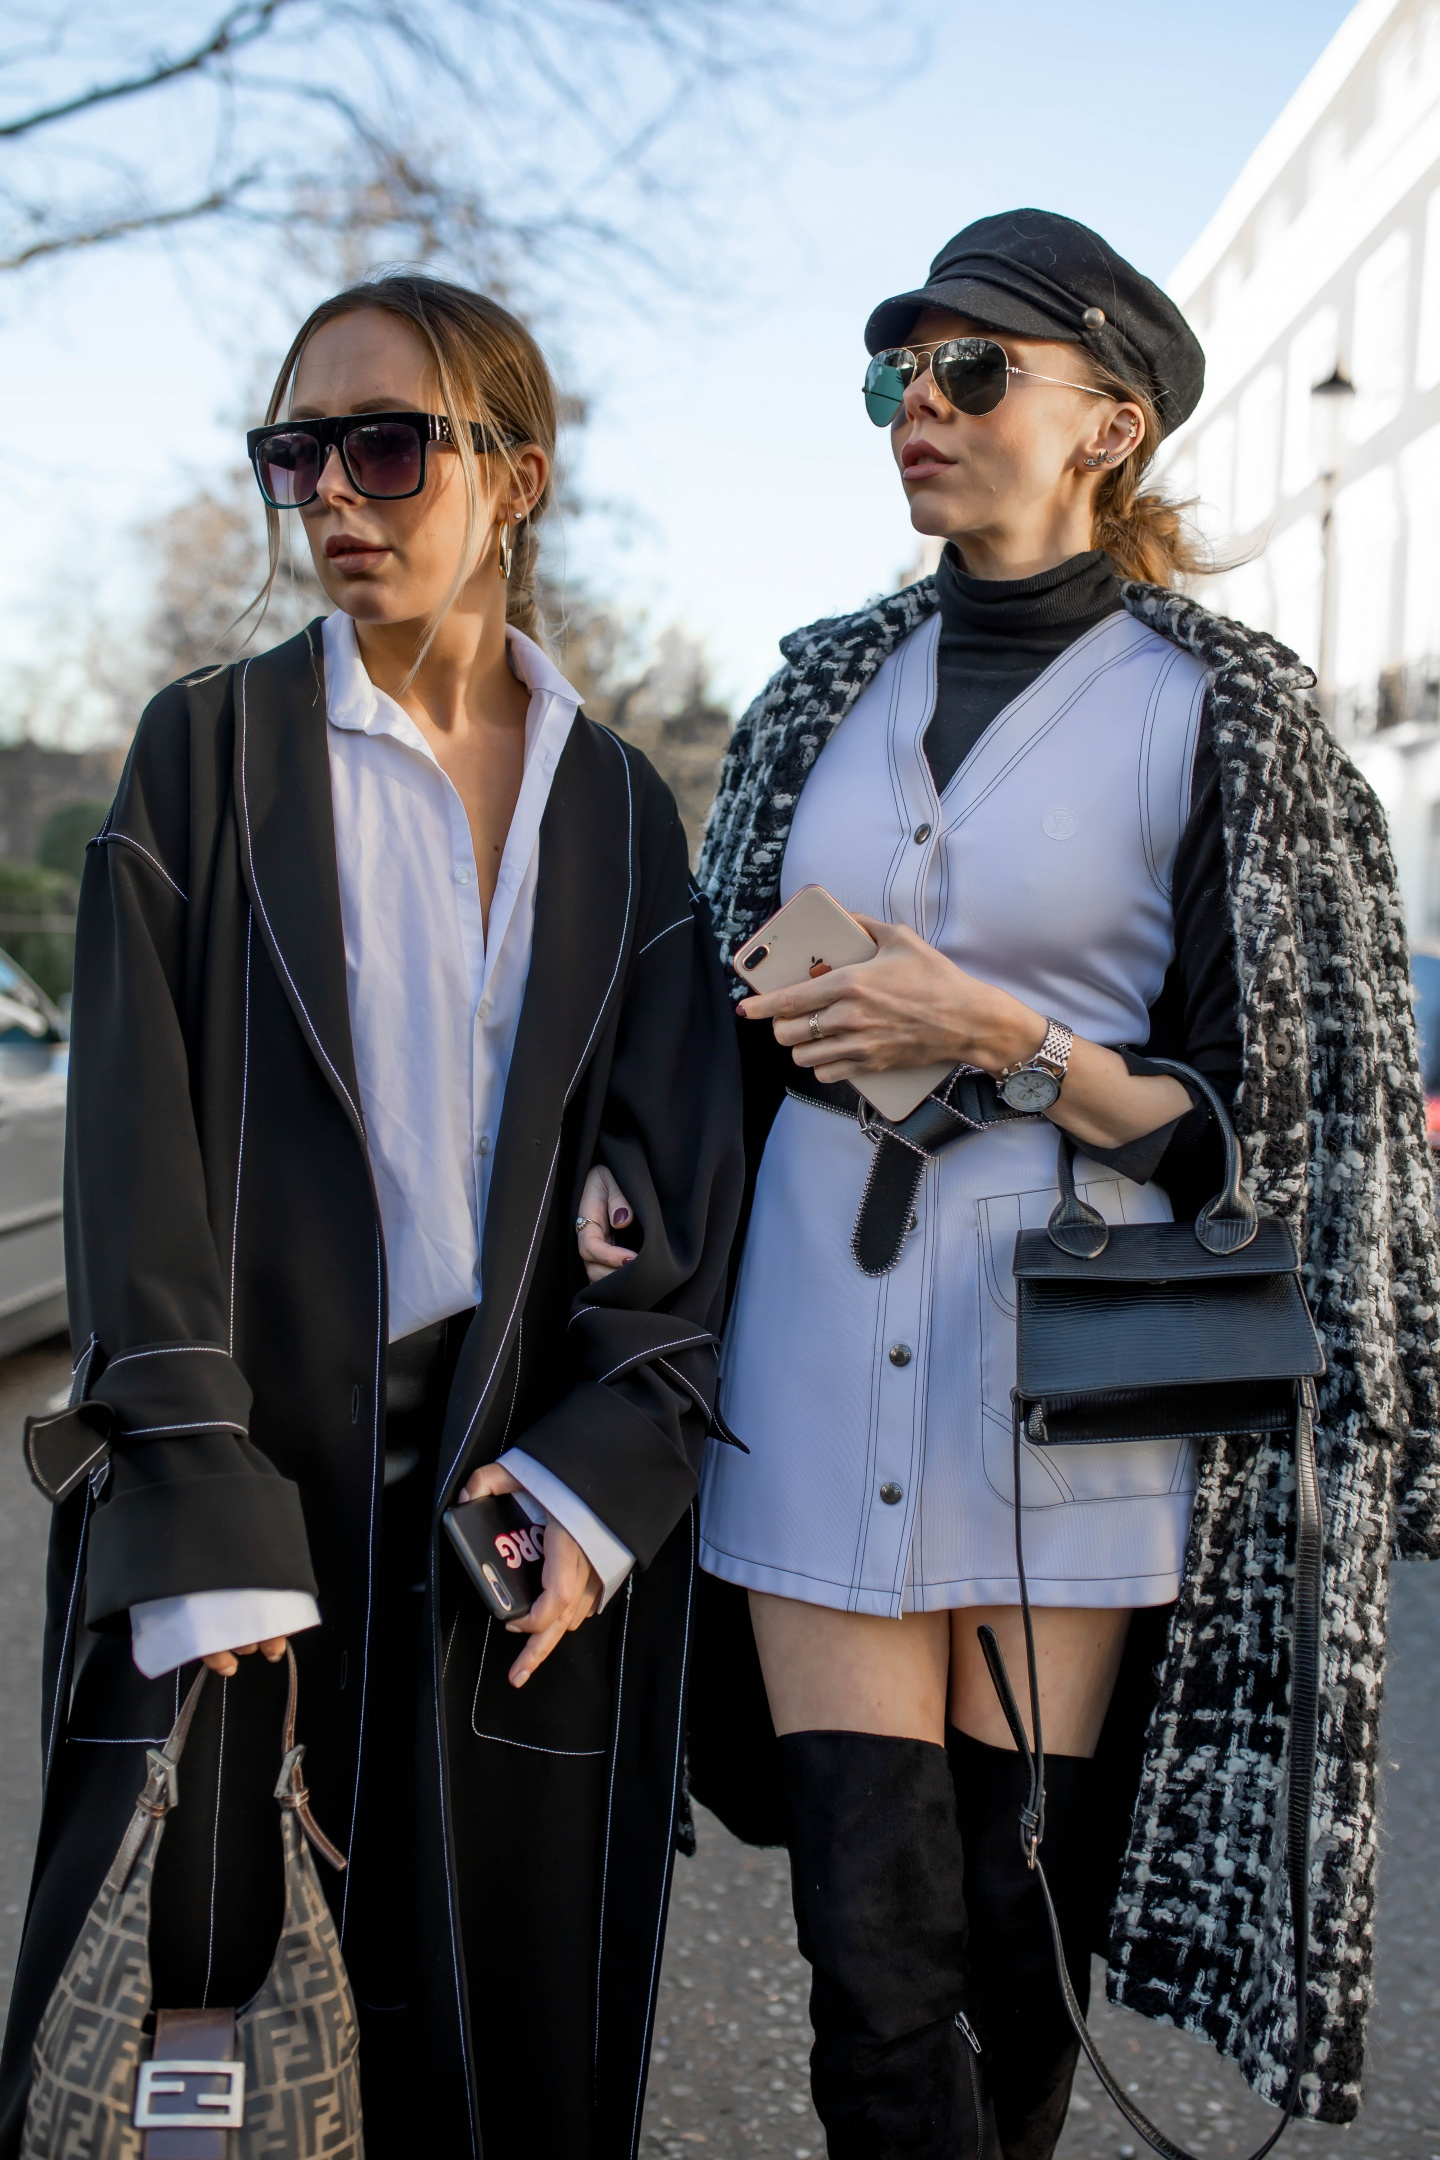 london fashion week, lfw, london fashion week street style, fashion, ss19, dolce & gabbana, louis vuitton, loewe, designer exchange